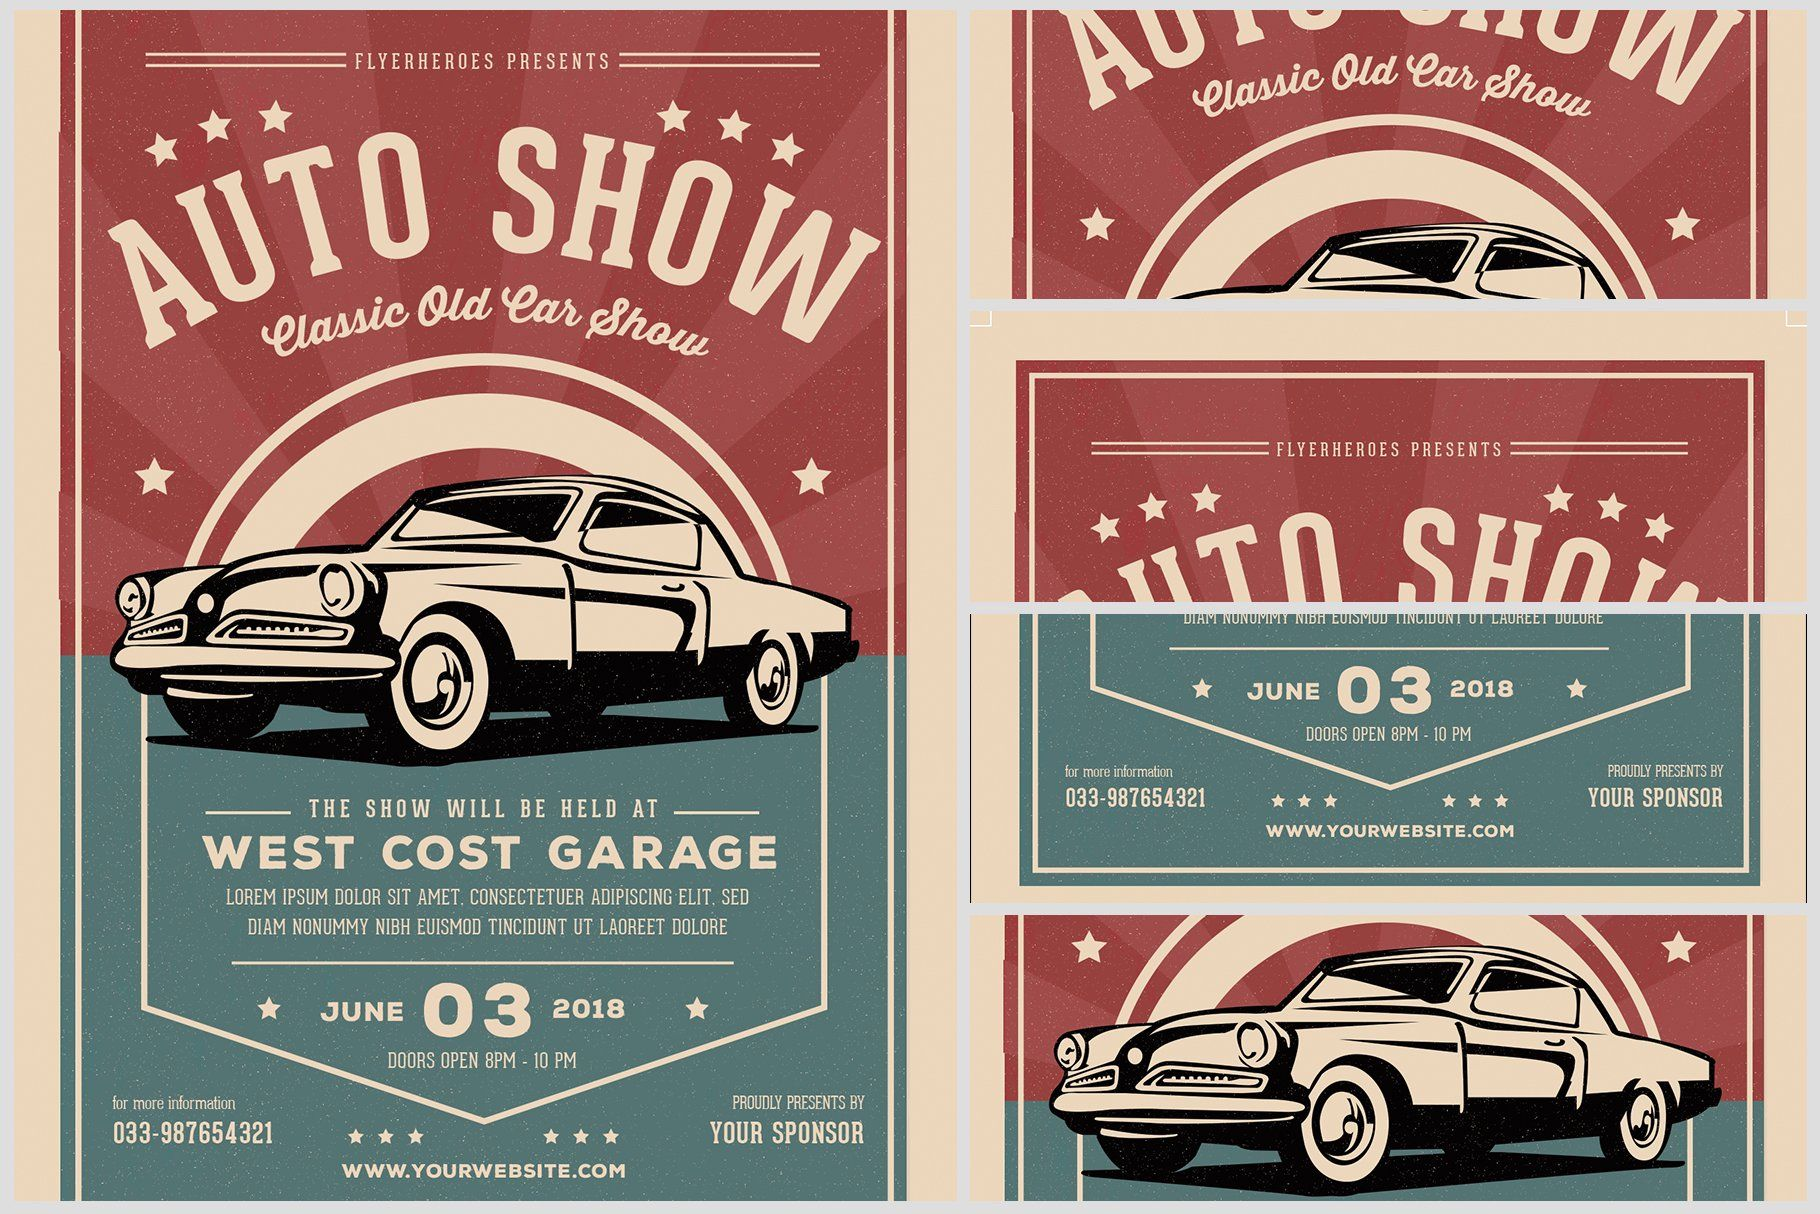 Old Classic Car Show Flyer Template Classic Car Show Old Classic Cars Car Show Car show flyer template free